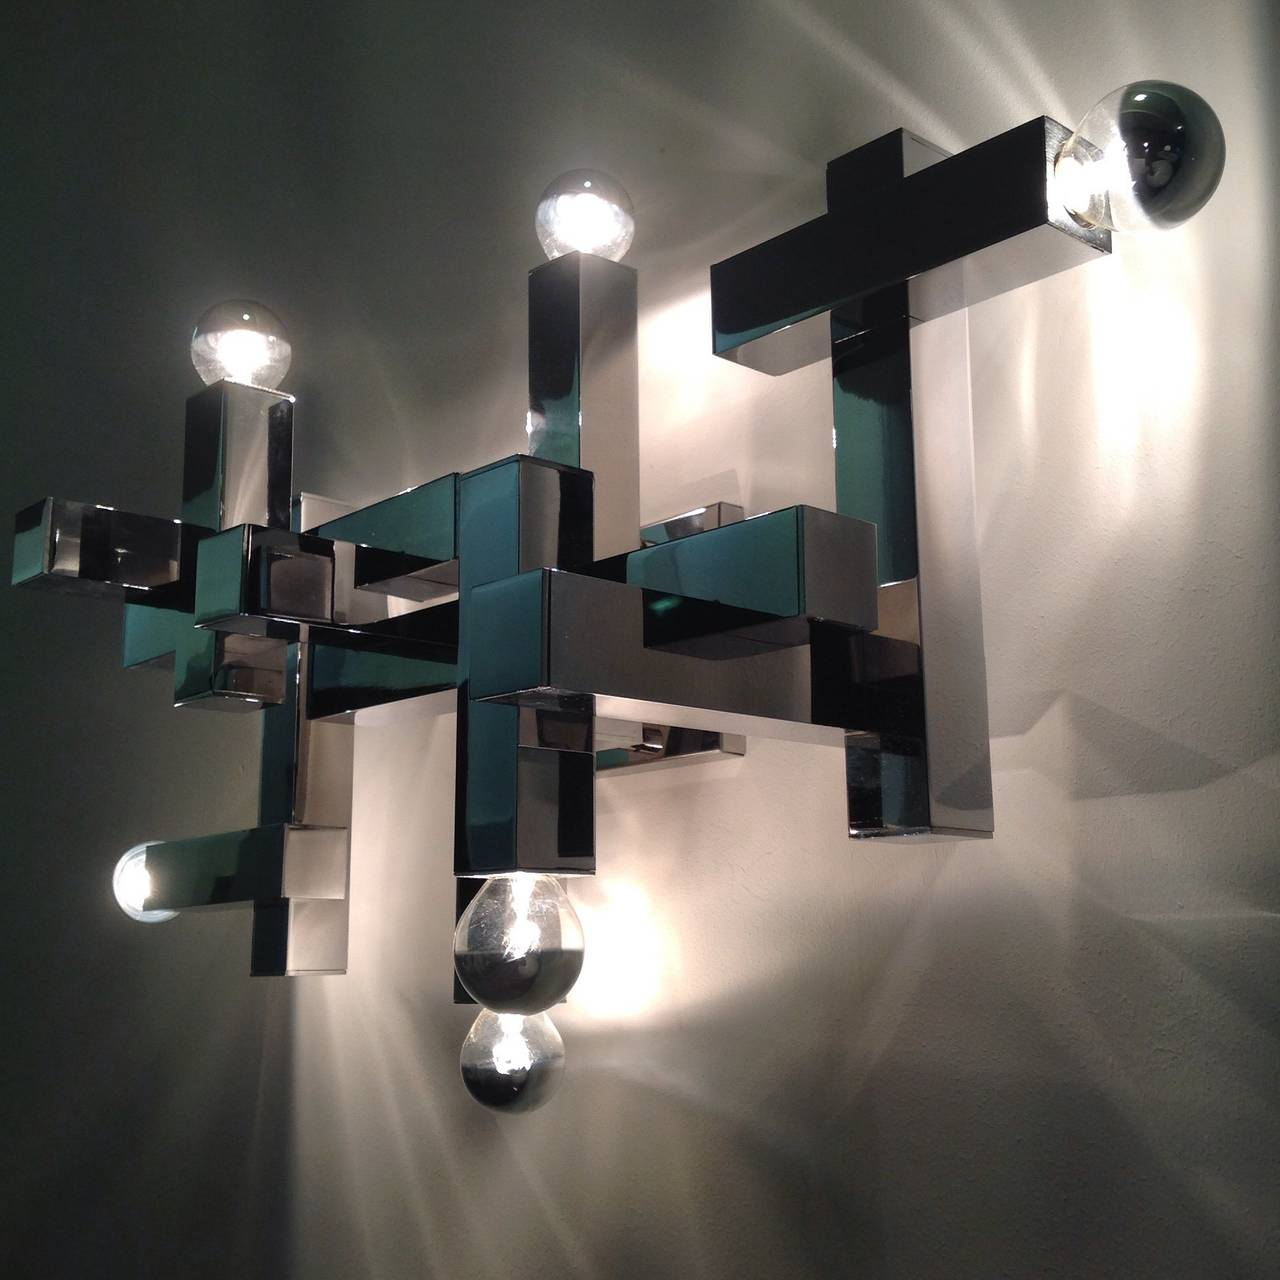 Exceptionally Beautiful Wall Lamp by Geatano Sciolari, in Top Condition For Sale at 1stdibs